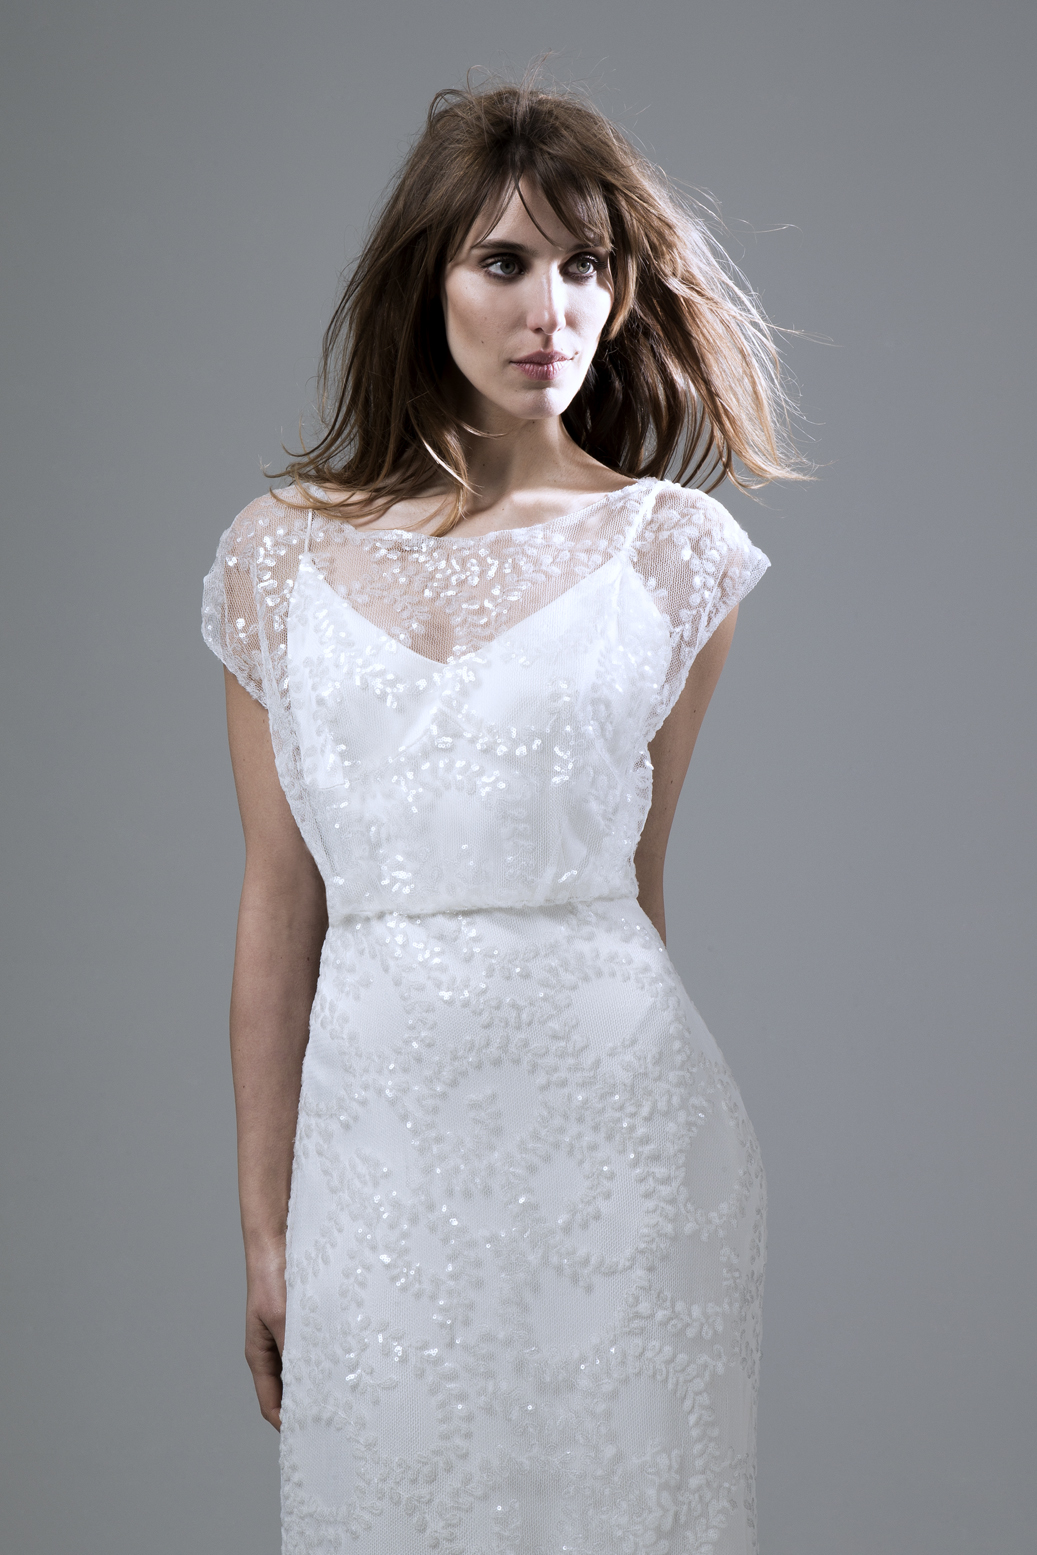 Lydia sequin ivory slash neck dress with puddle train wedding dress by Halfpenny London